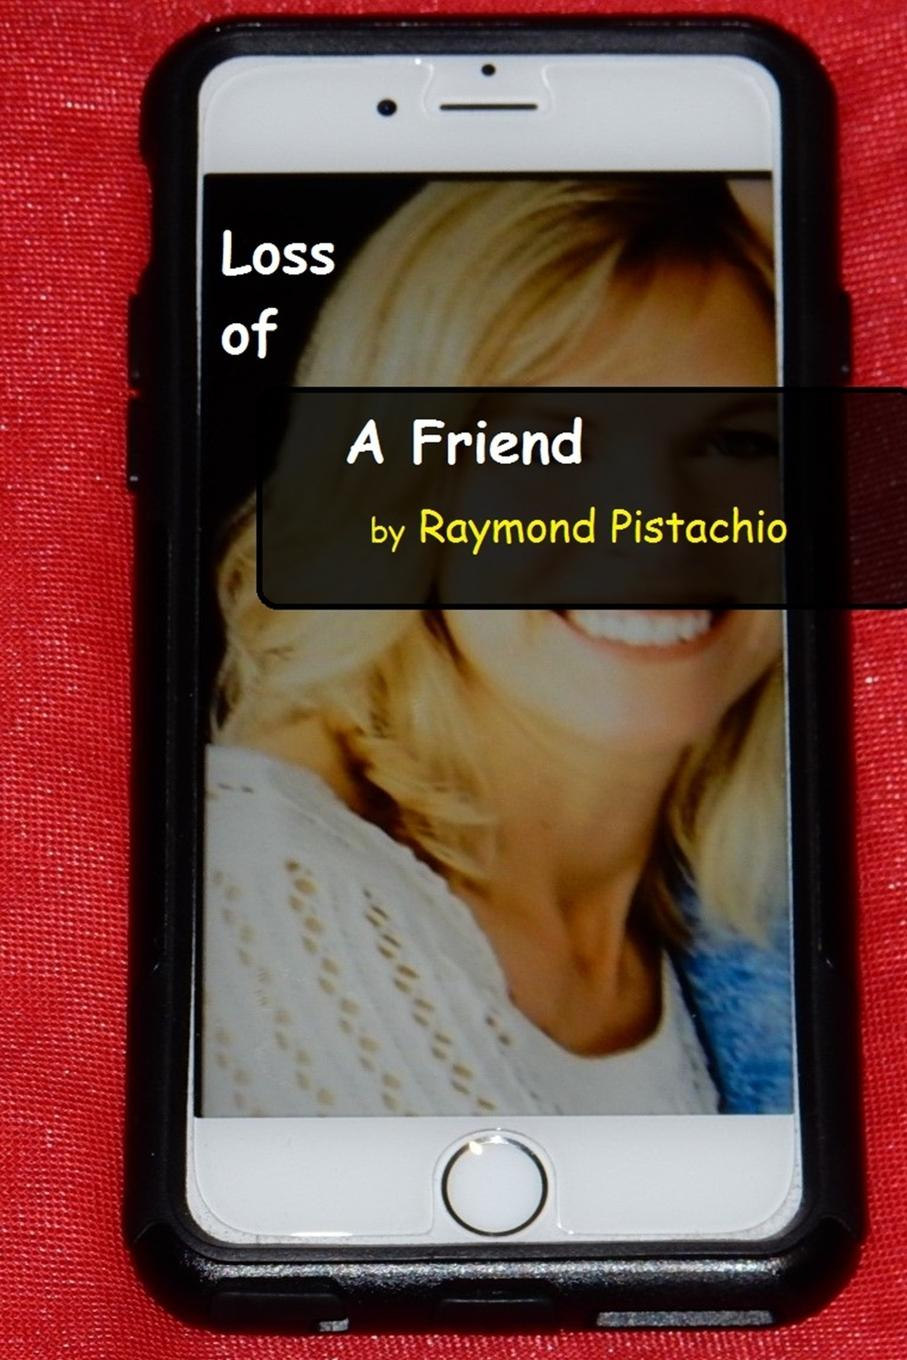 Raymond Pistachio Loss of A Friend steve saccone relational intelligence how leaders can expand their influence through a new way of being smart